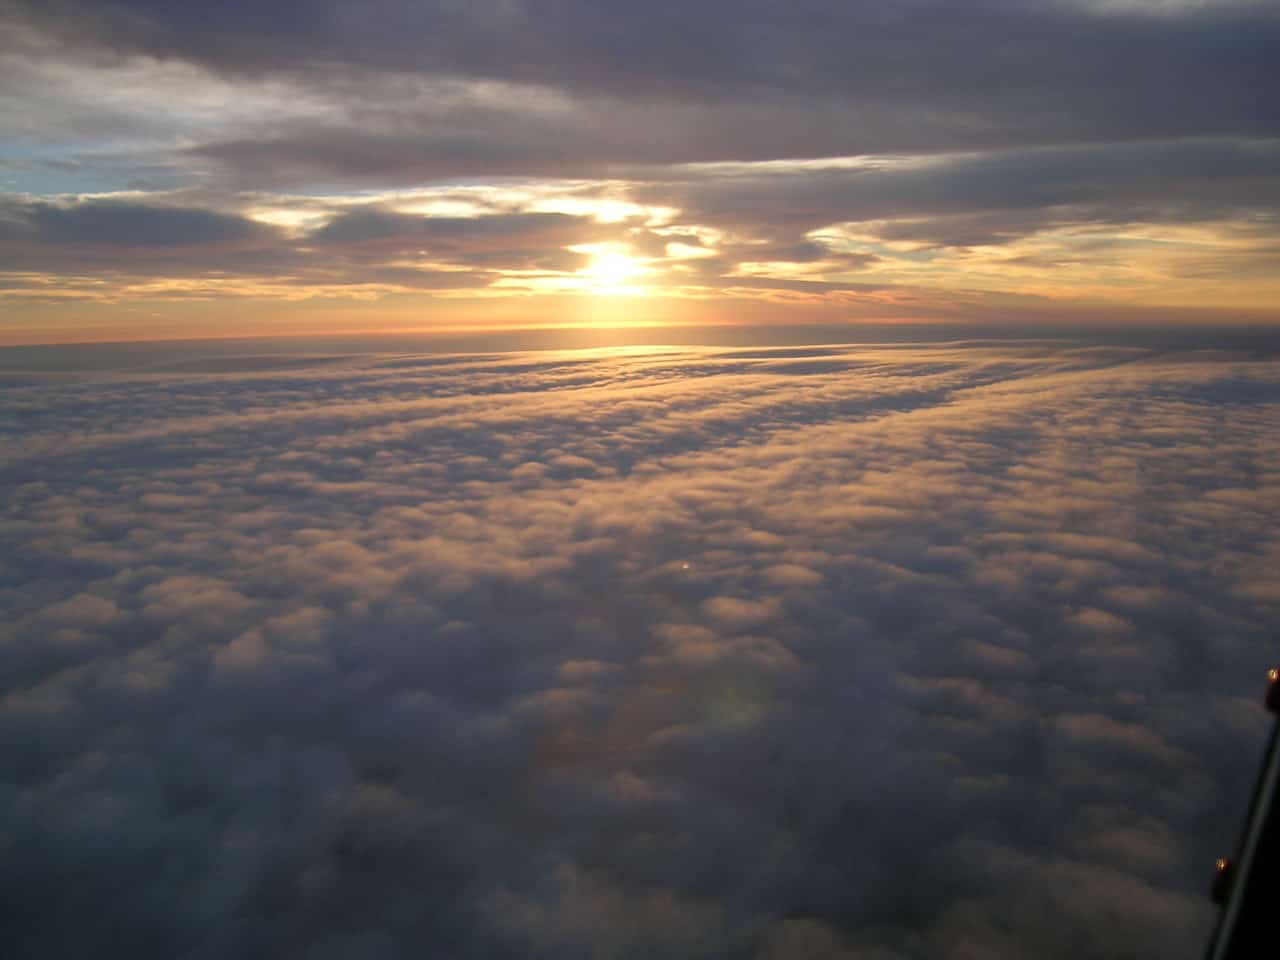 Sunshine above a blanket of clouds